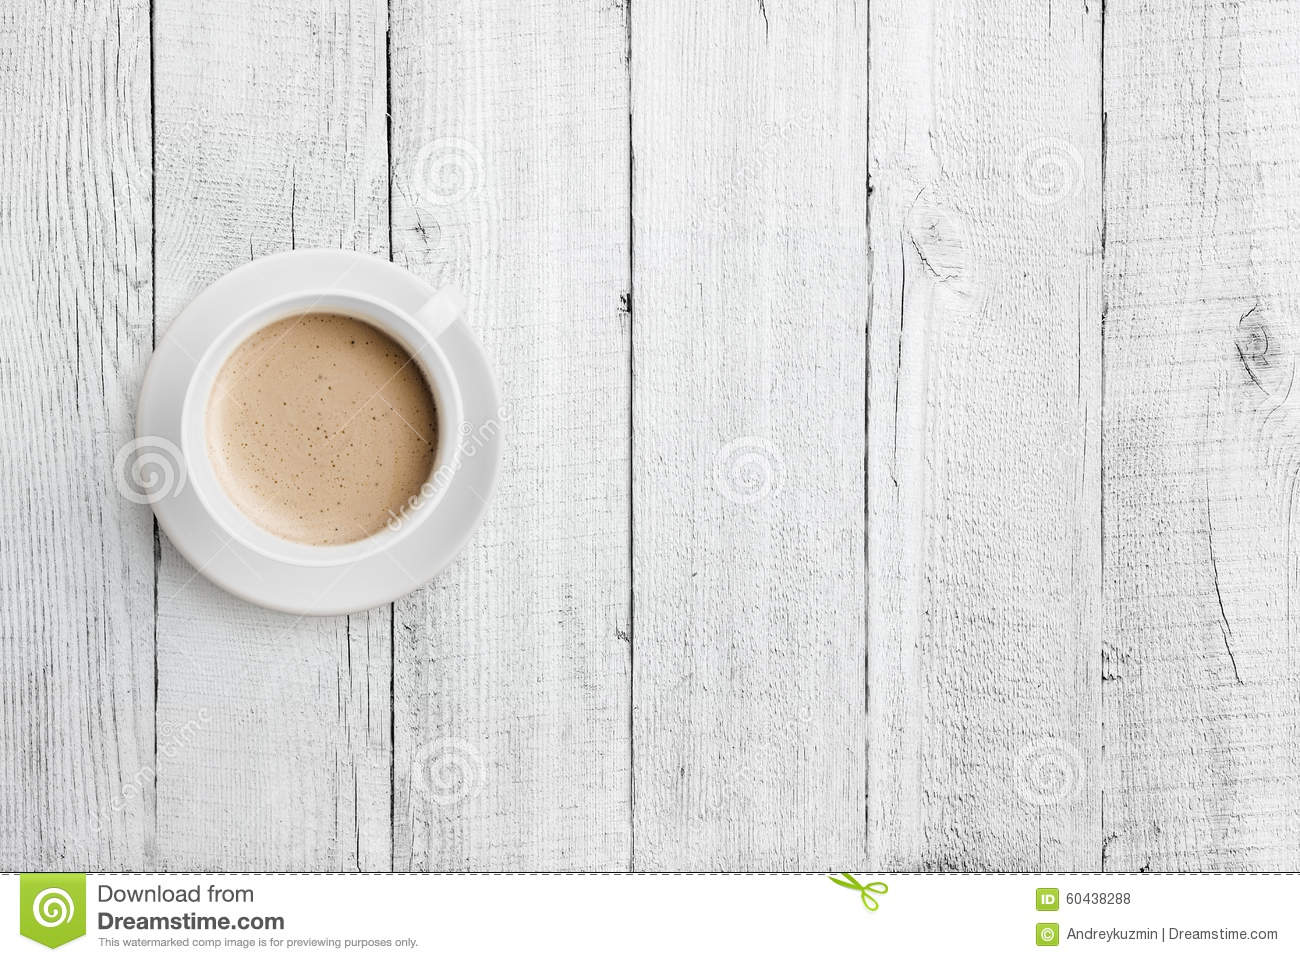 Very Impressive portraiture of Coffee Cup On White Wood Table Top View Stock Photo Image: 60438288 with #85A724 color and 1300x962 pixels